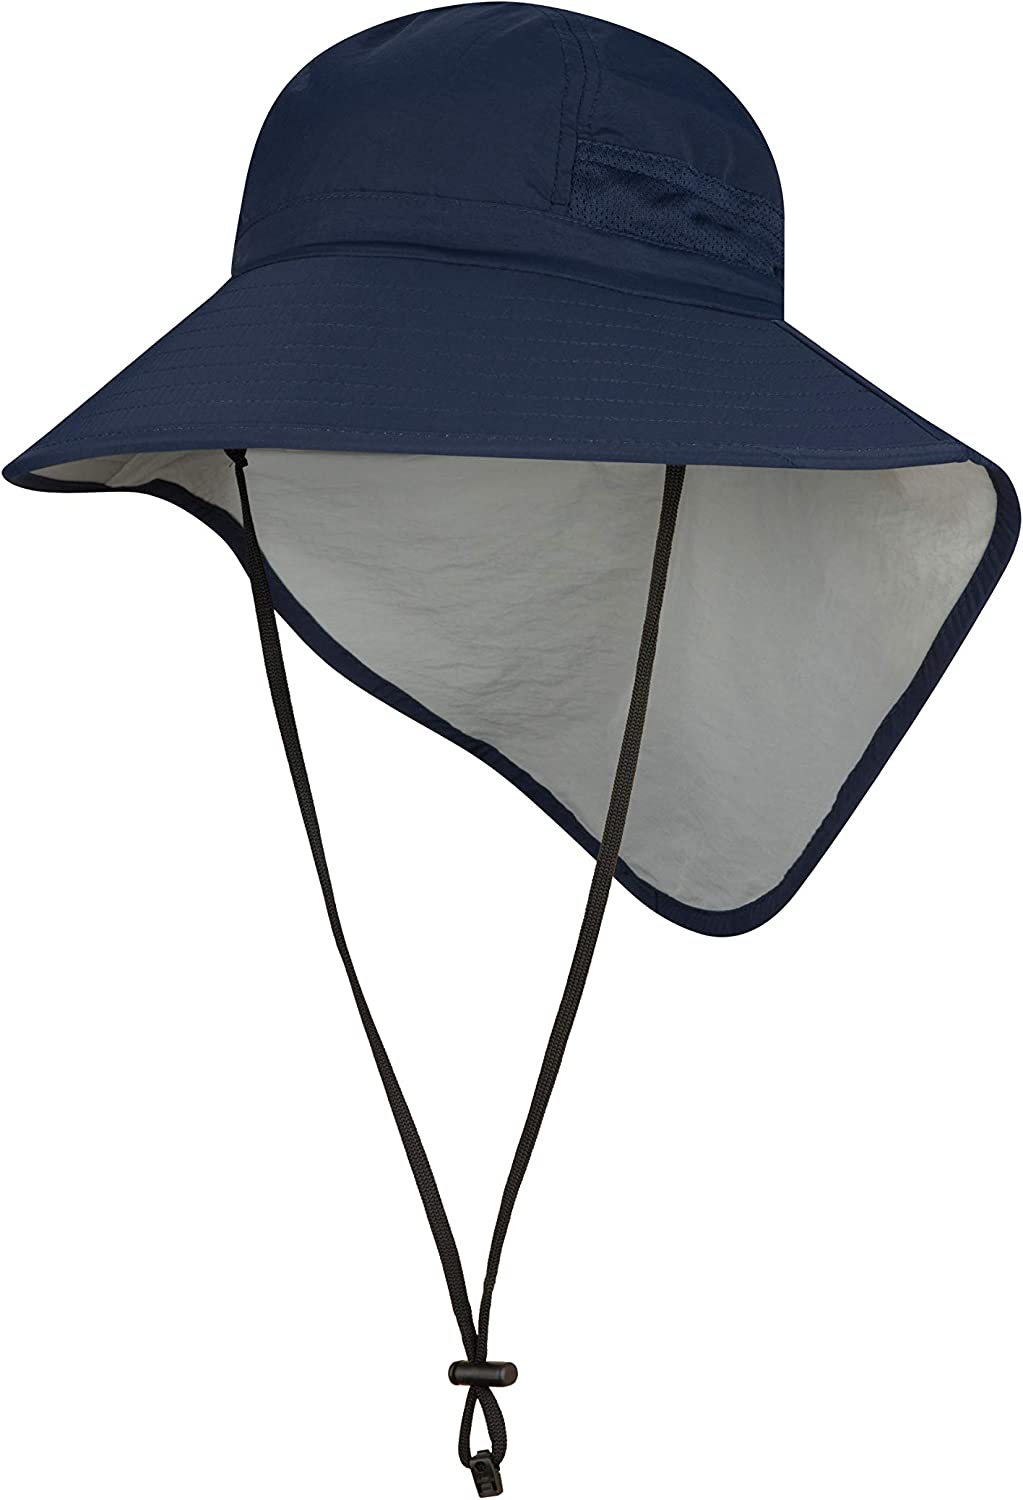 Great for The Beach UV Protection for Men /& Women Solbari UPF 50+ Protective Adventure Sun Hat Gardening /& More Universal Fit Fishing